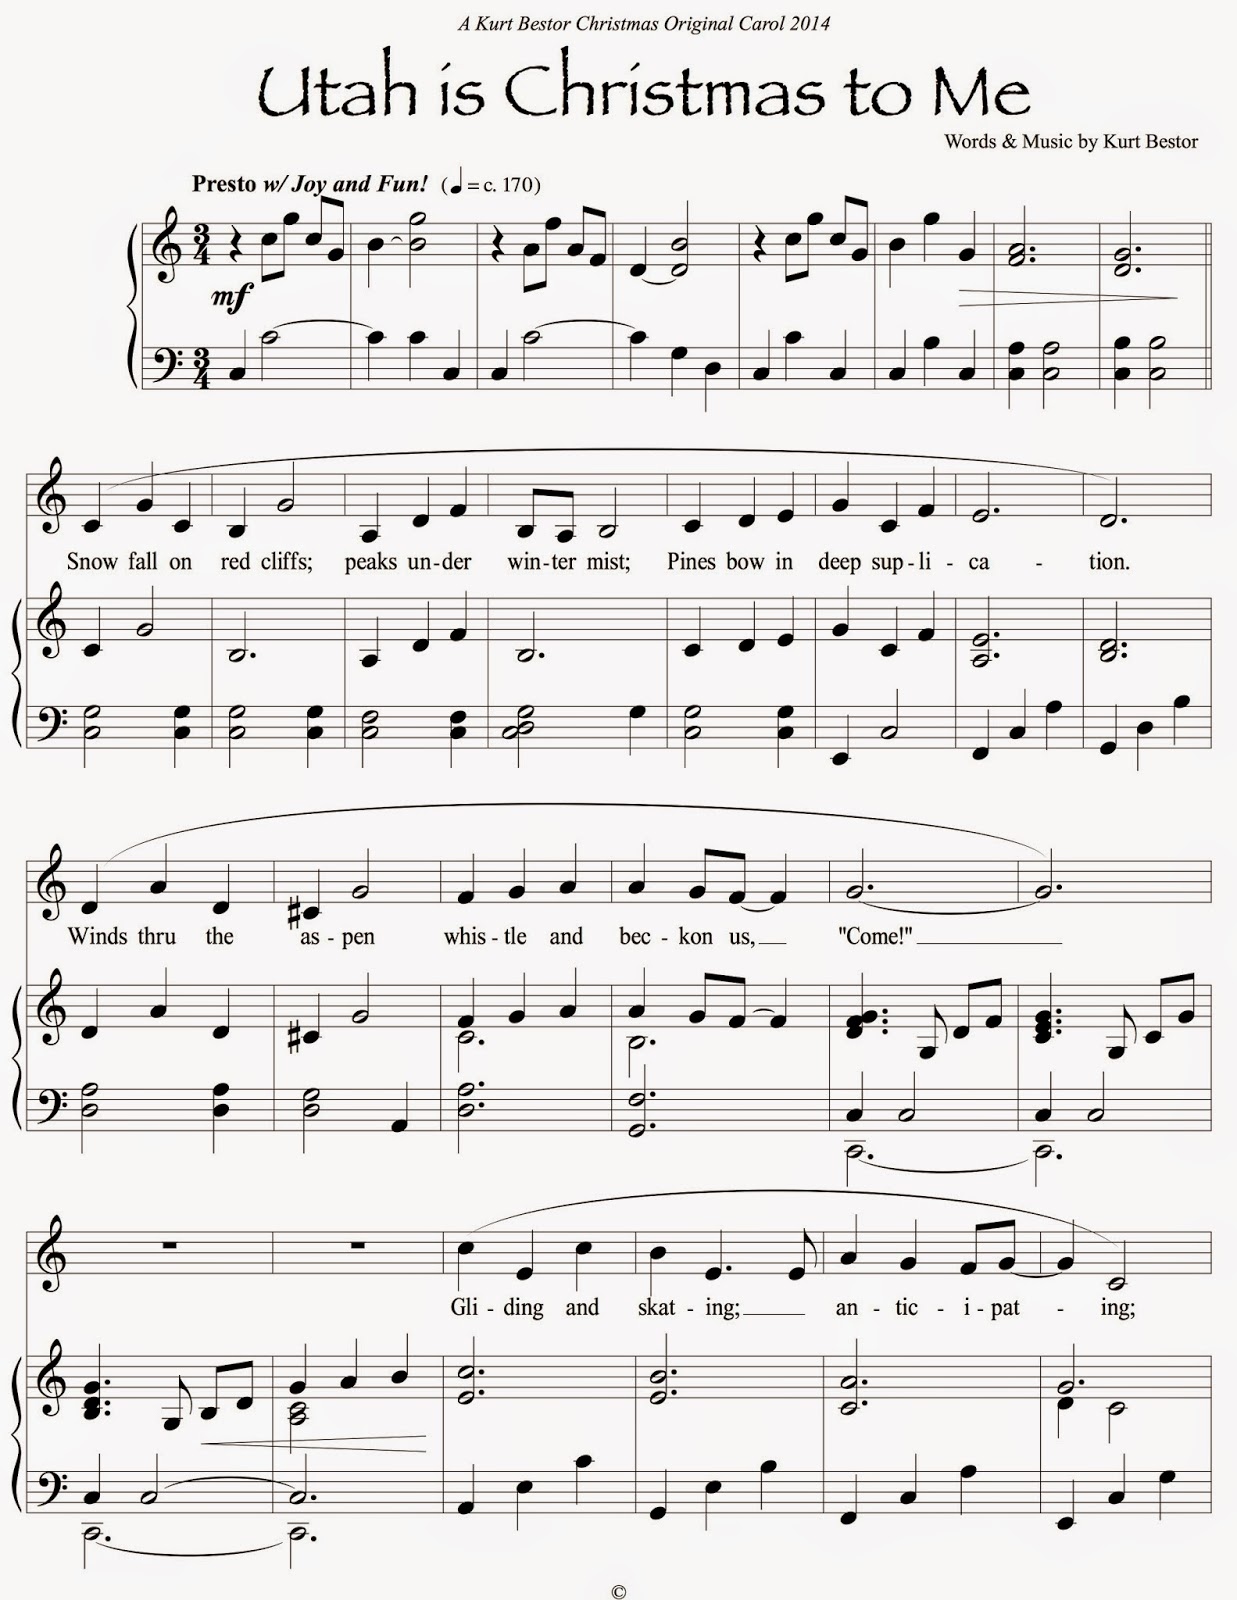 Prayer of the children the story behind the song the bestor a kurt bestor christmas 2014 original carol for download hexwebz Gallery